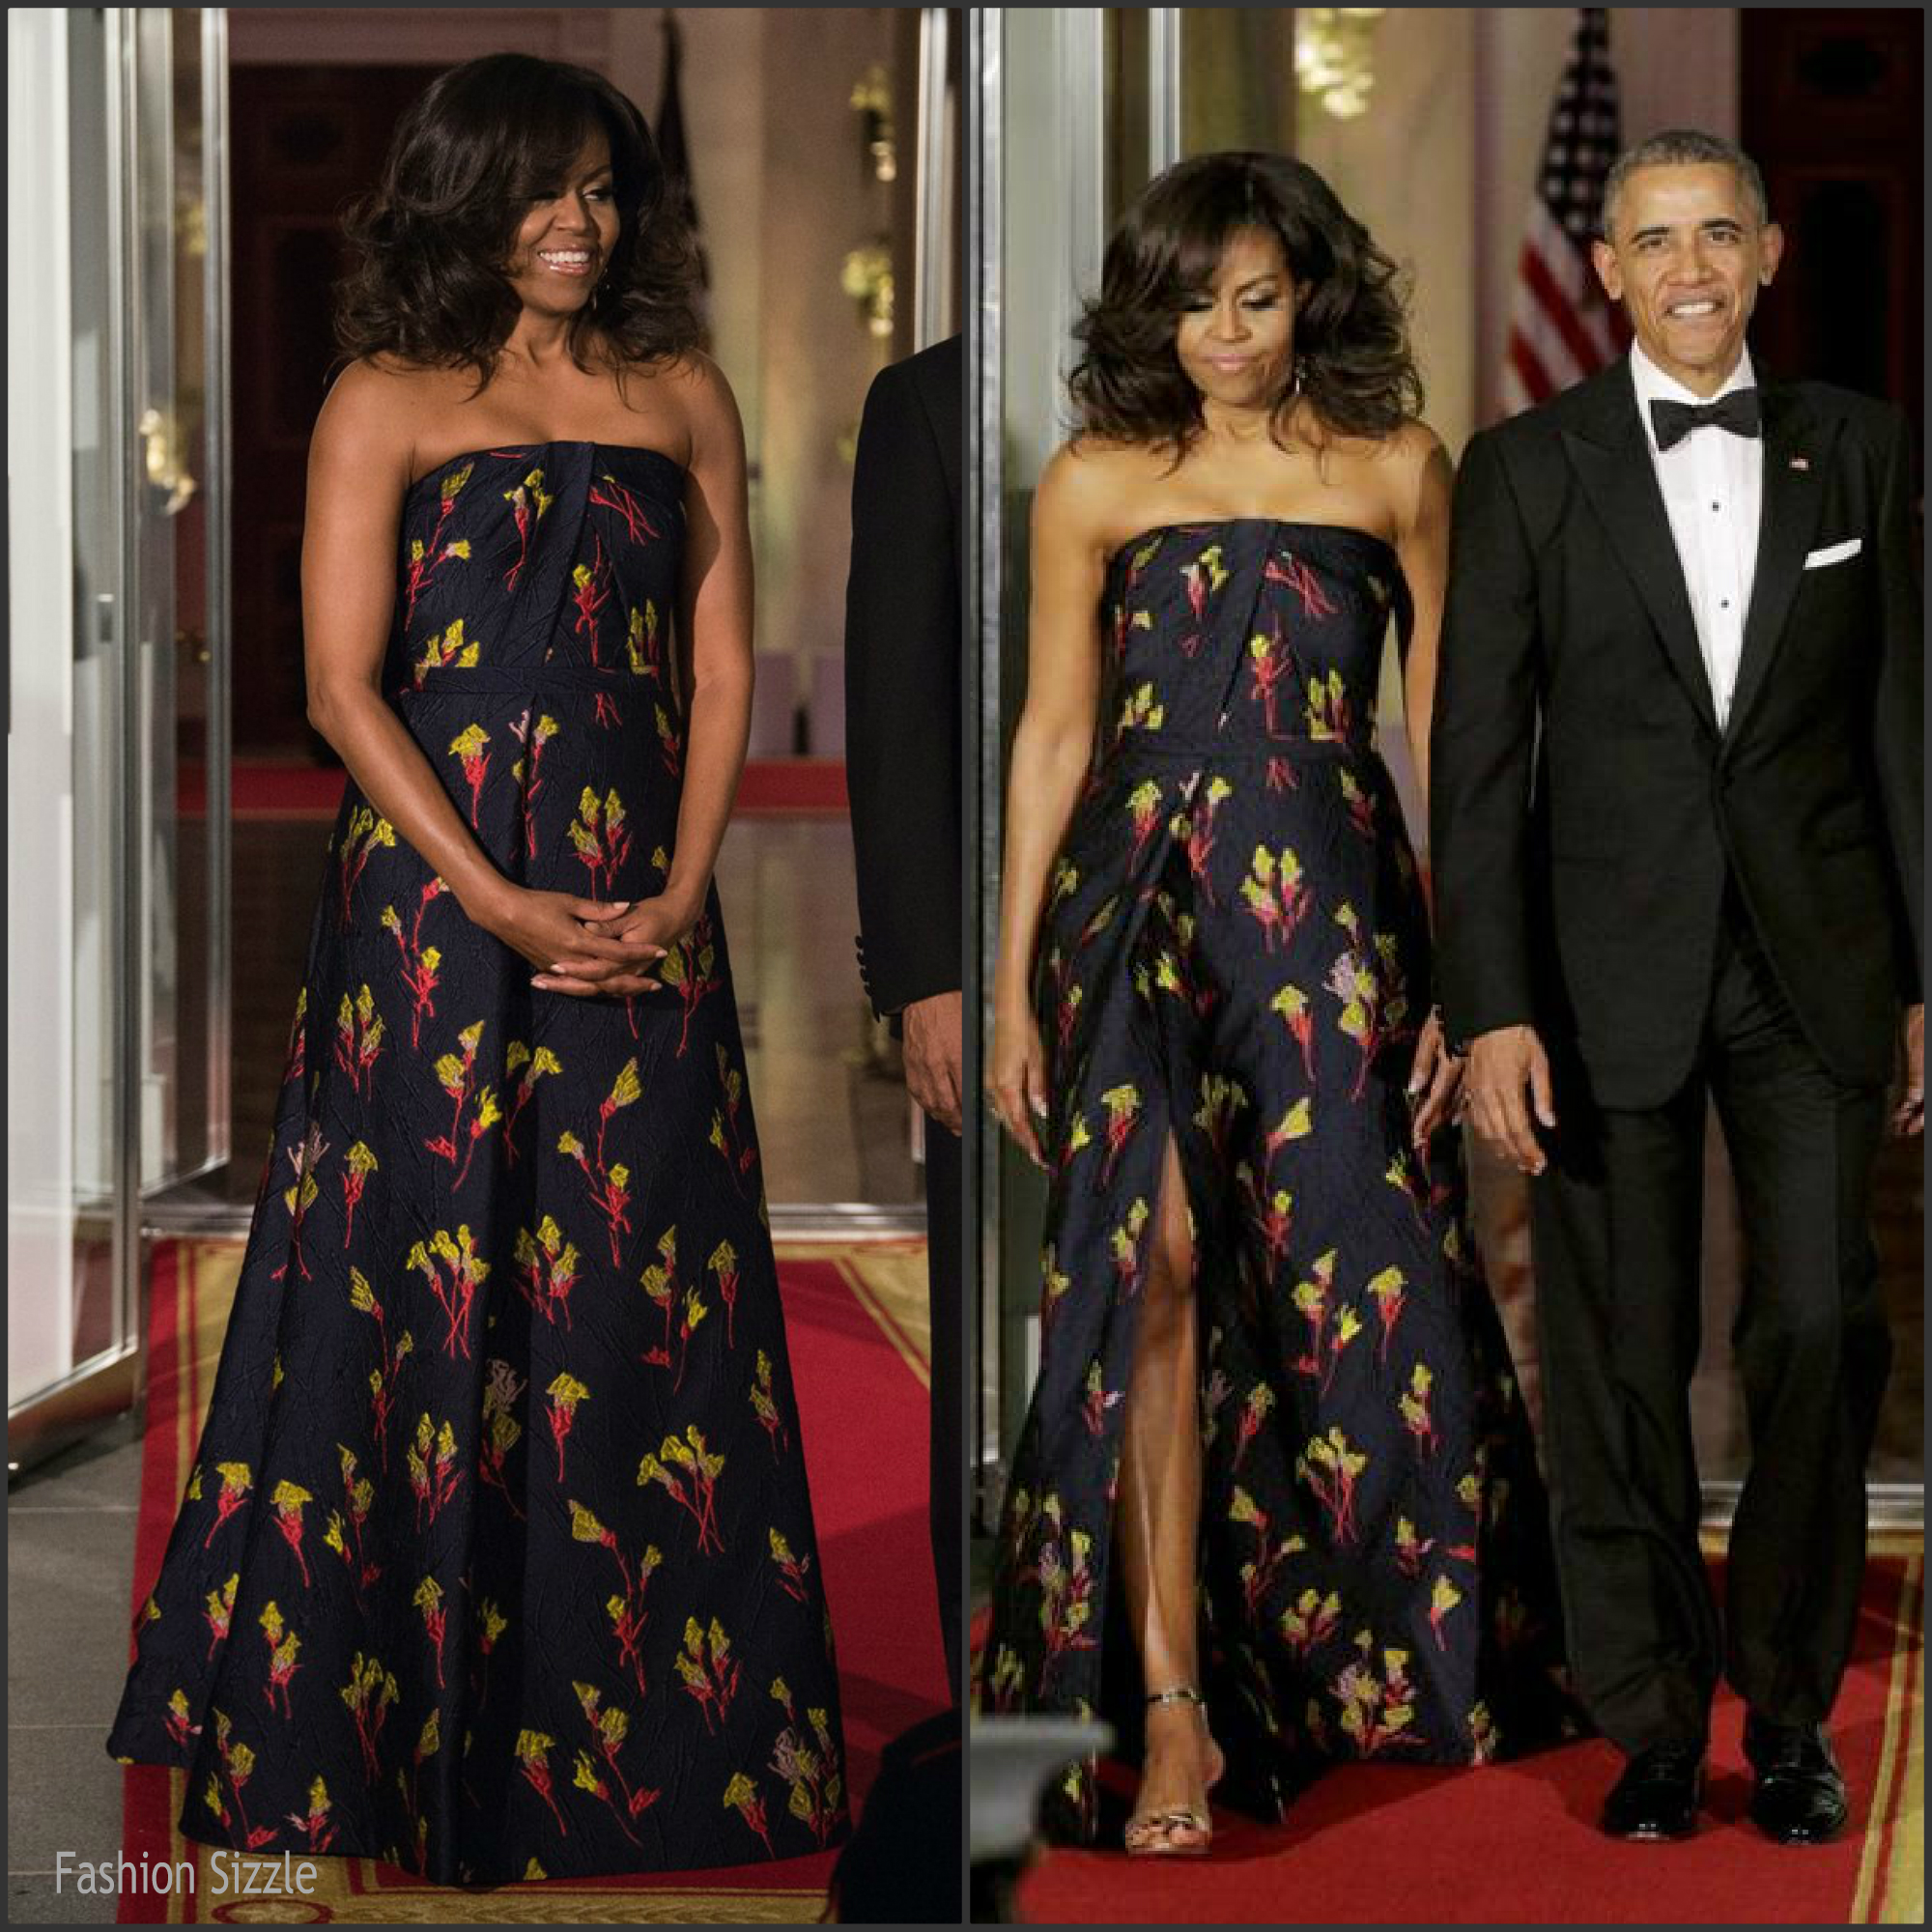 michelle-obama-in-jason-wu-state-dinner-for-canadian-pm-trudeau